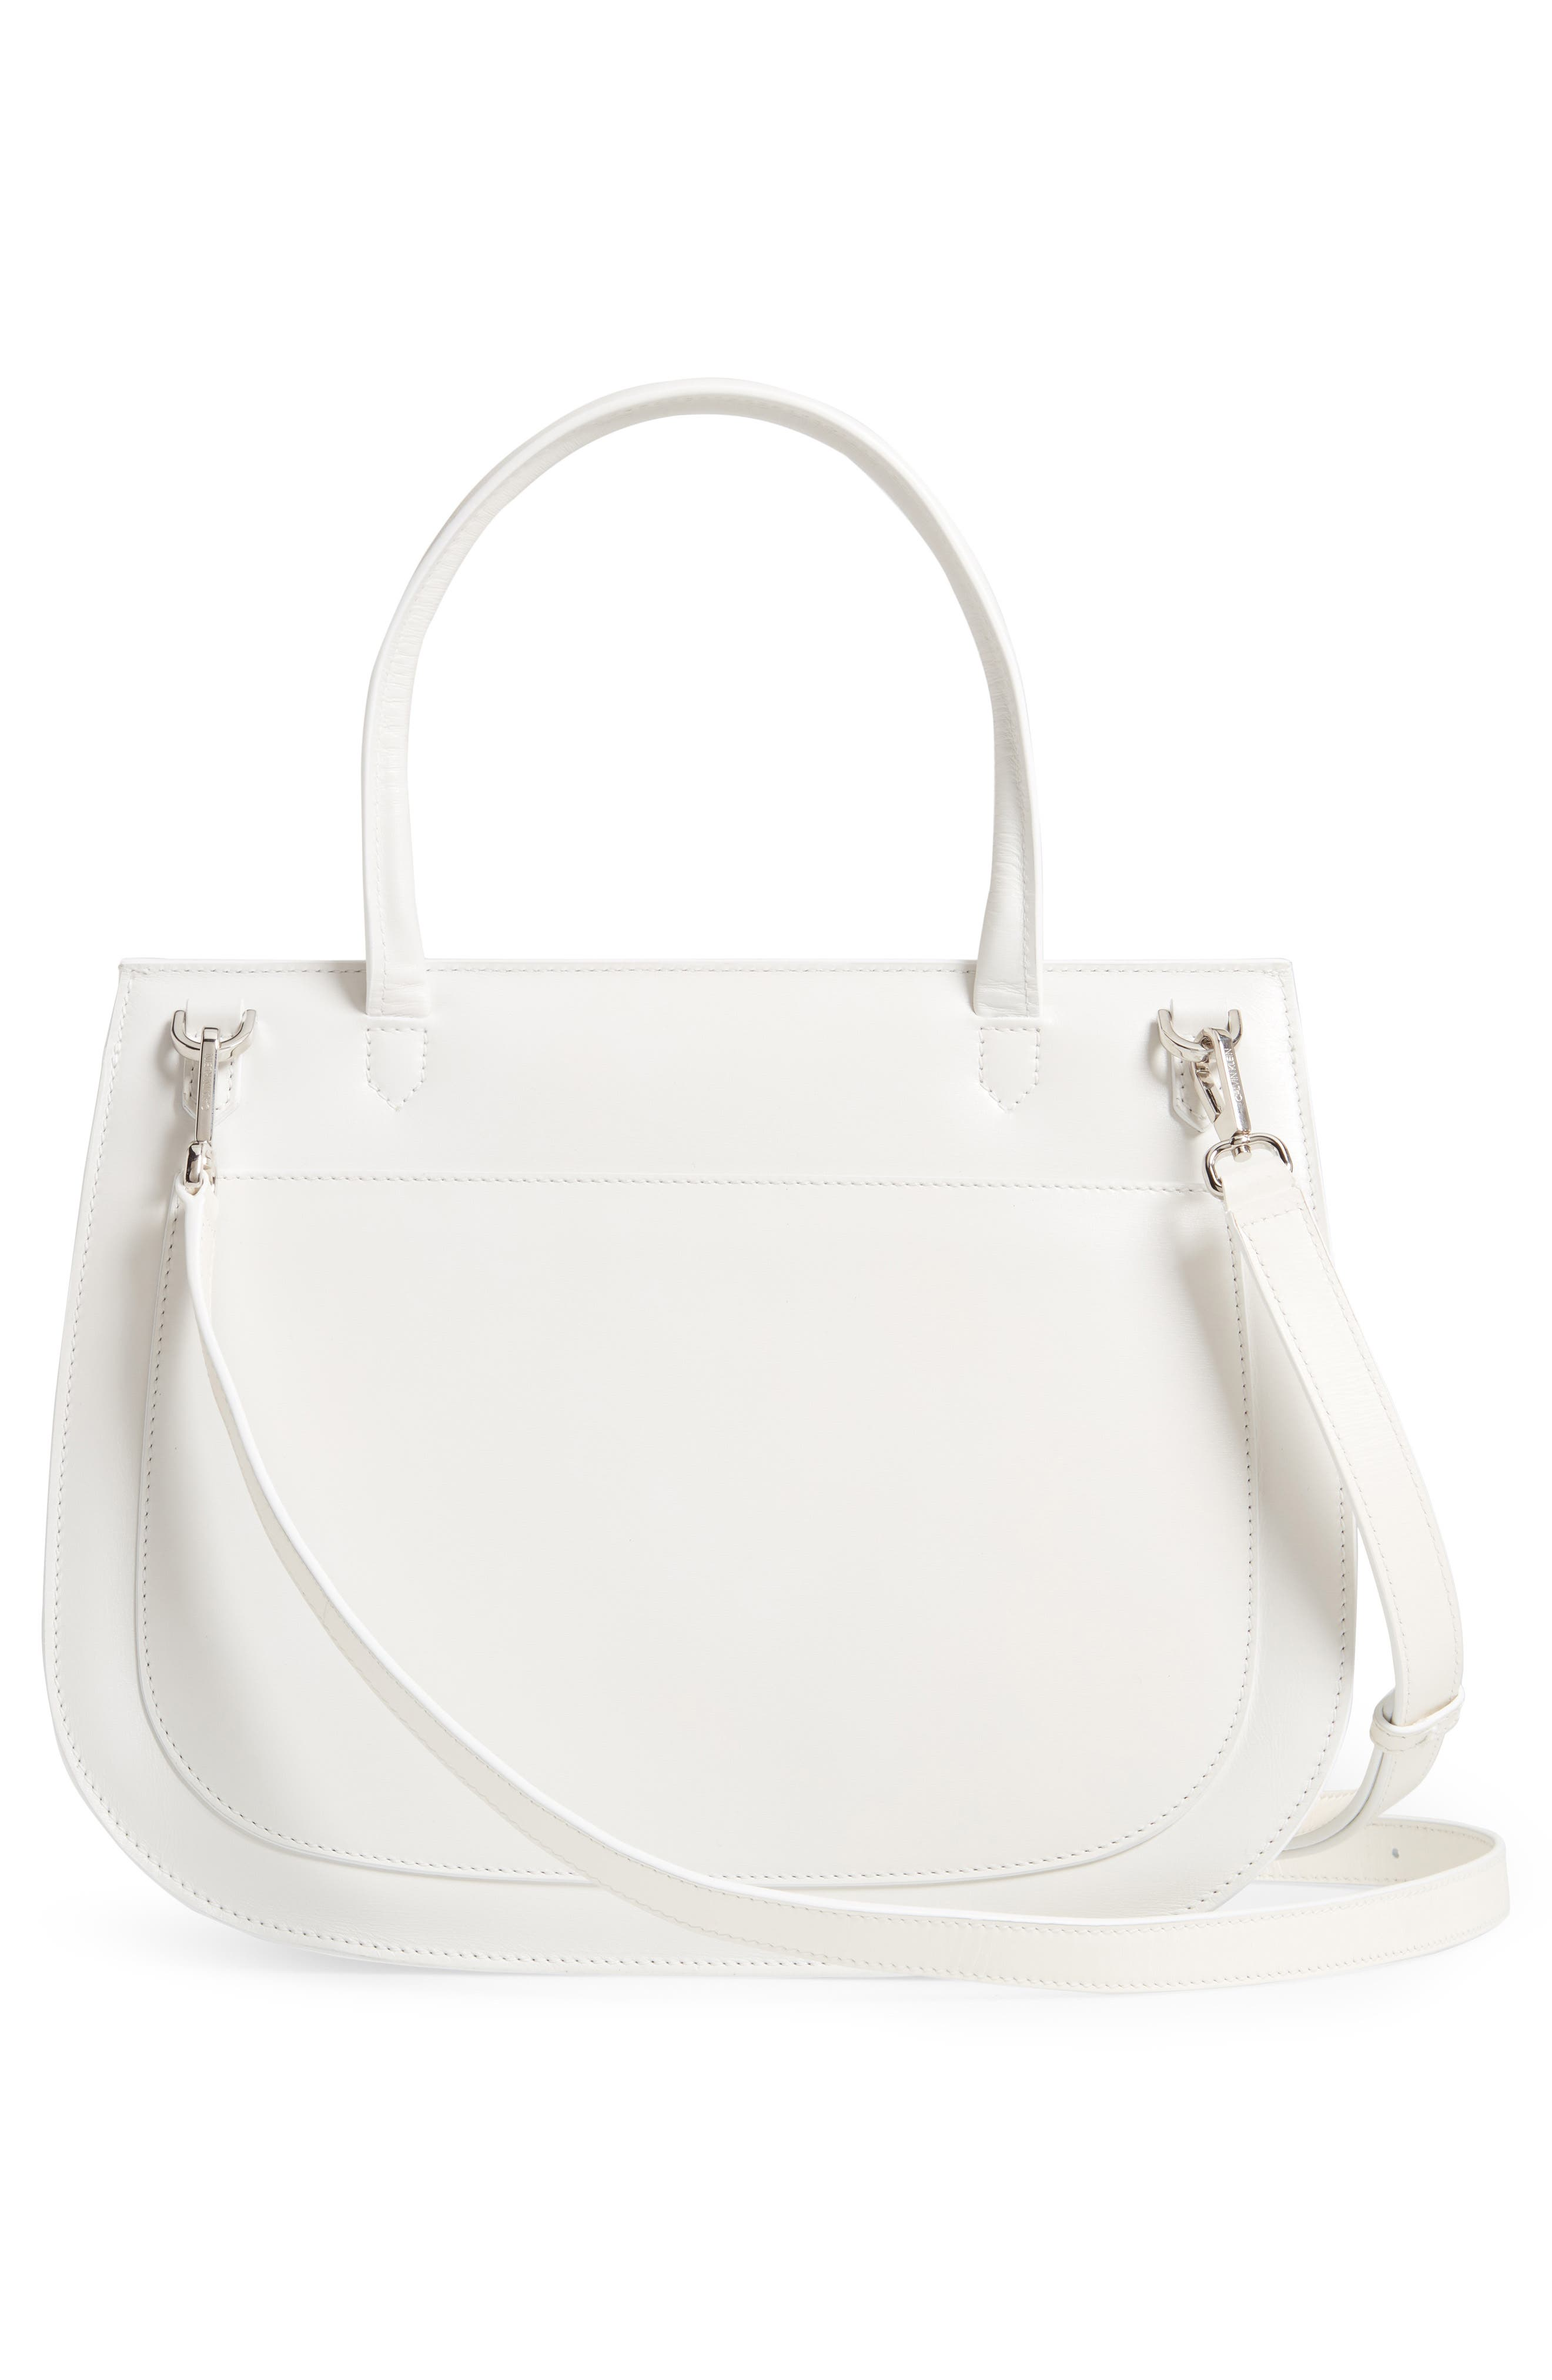 Top Handle Round Lock Shoulder Bag,                             Alternate thumbnail 3, color,                             WHITE